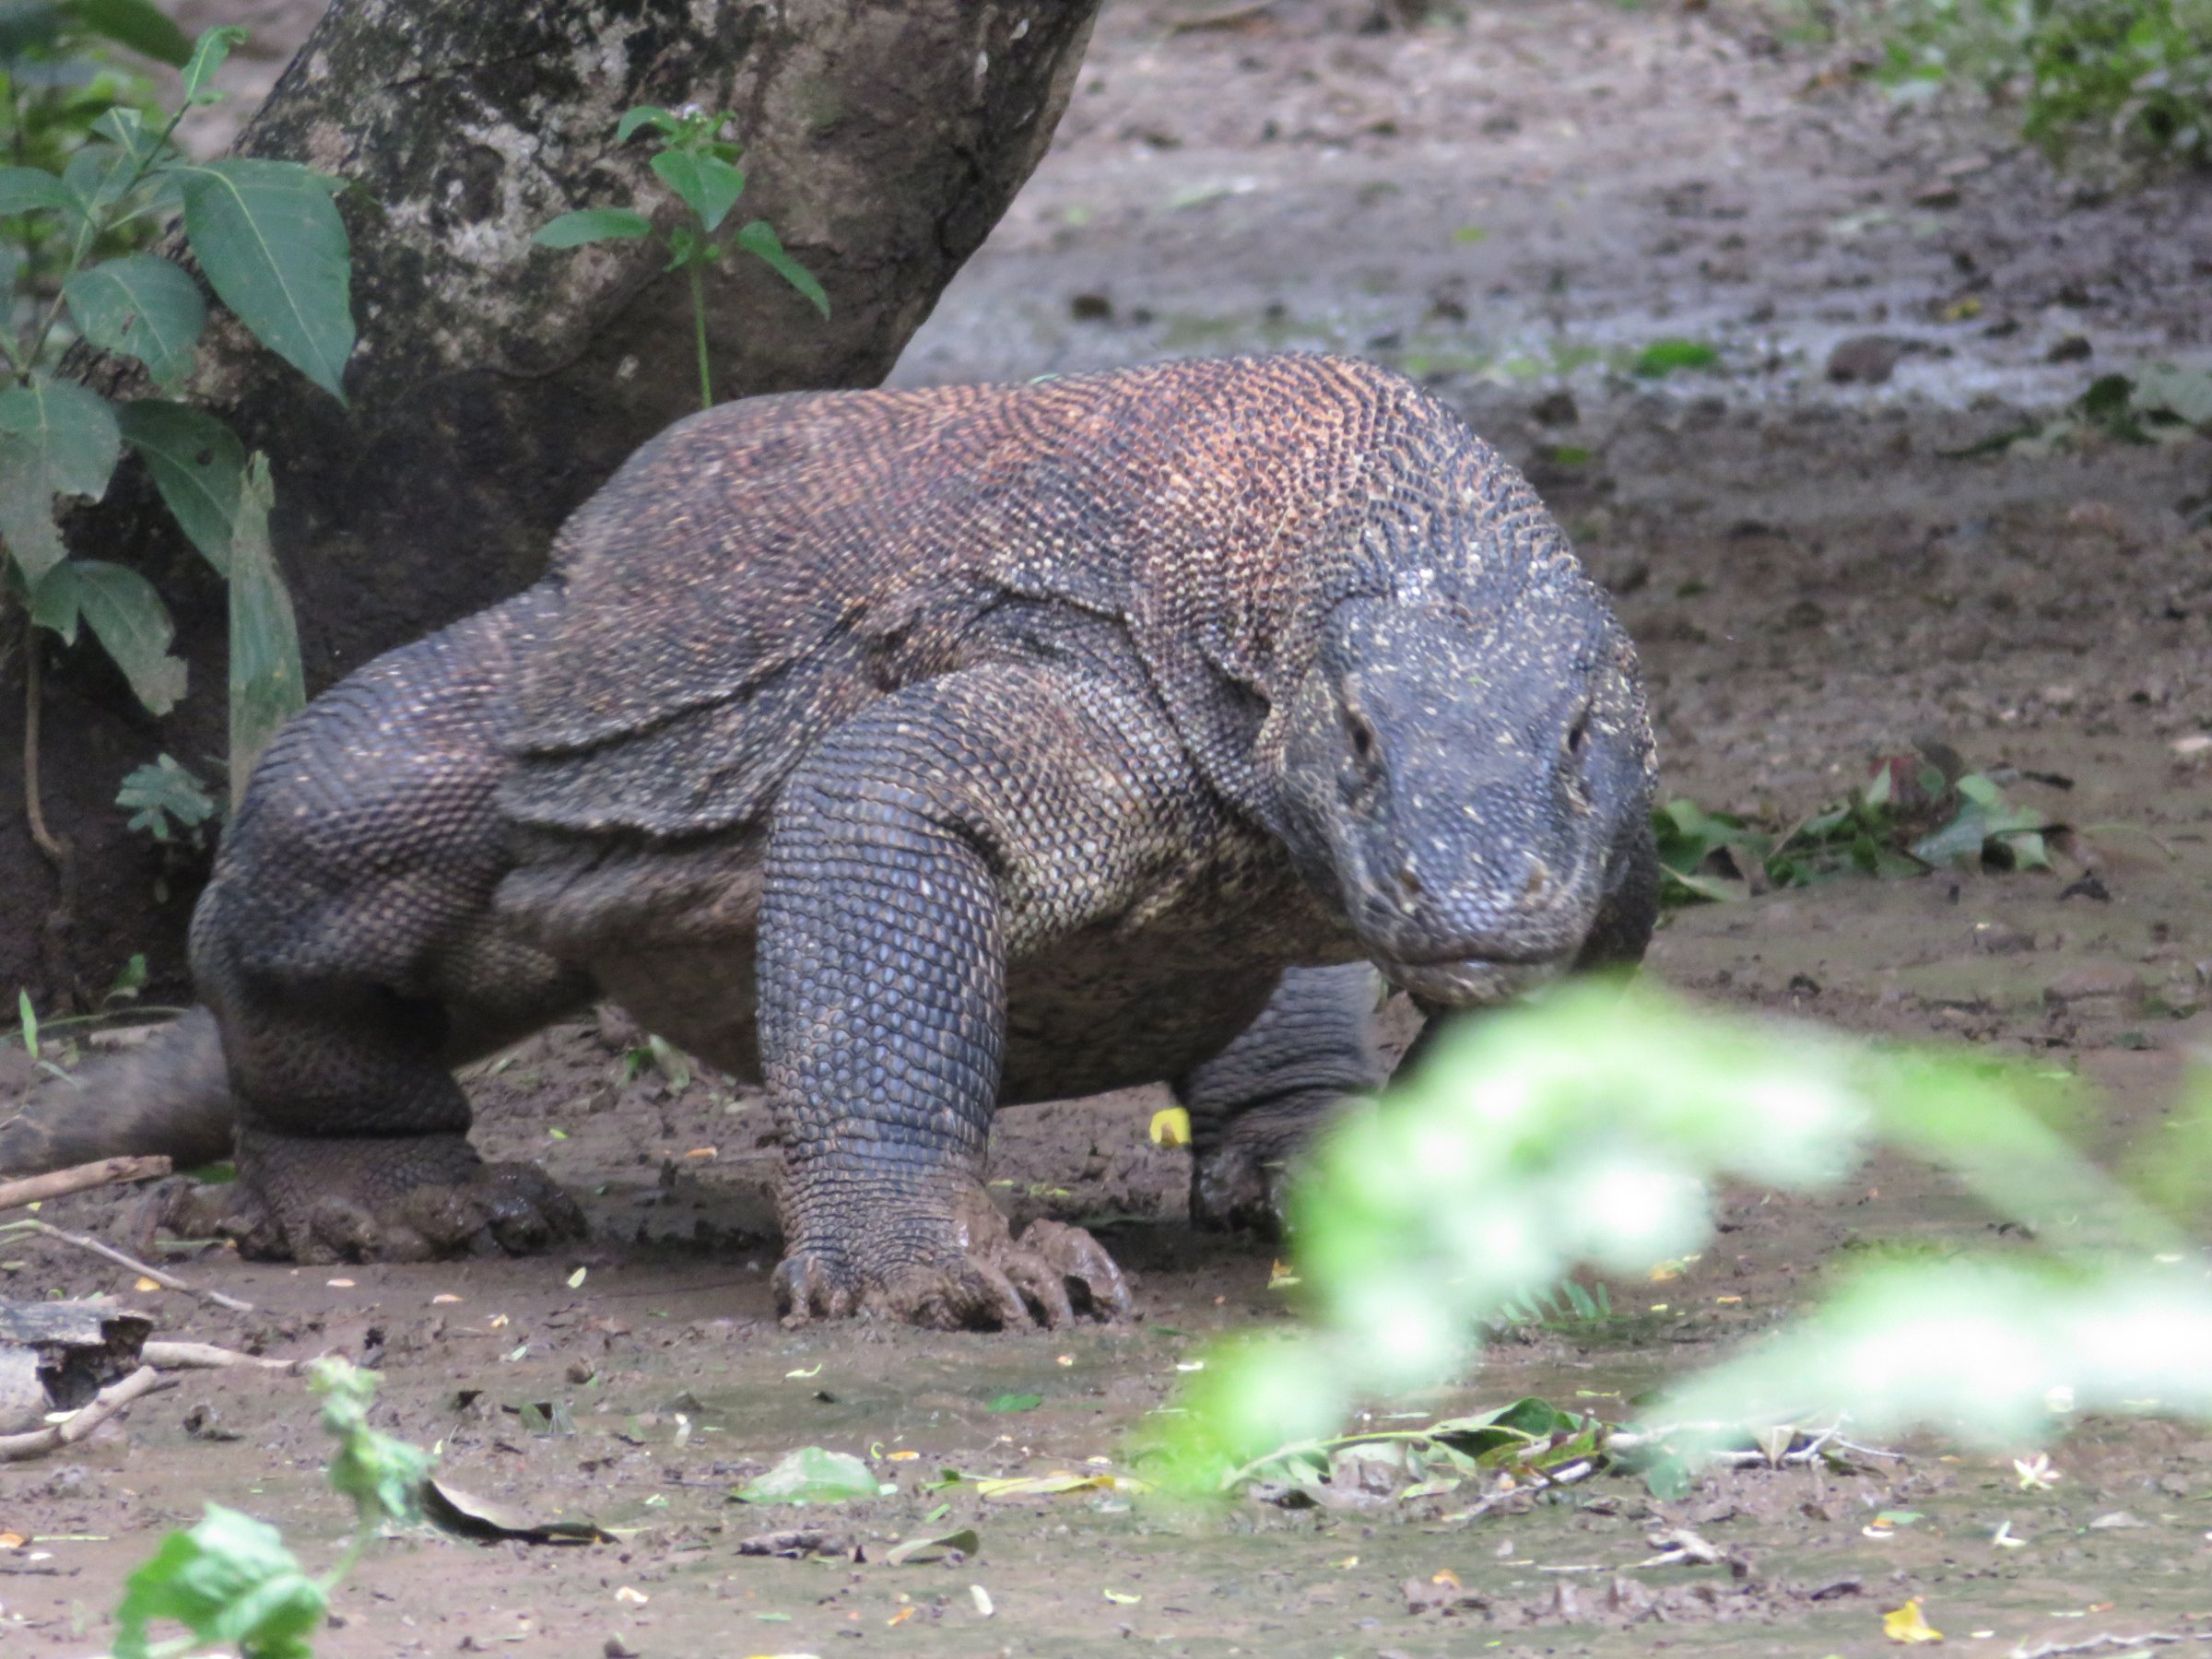 3-Day Discover the Komodo - Indonesia Itinerary